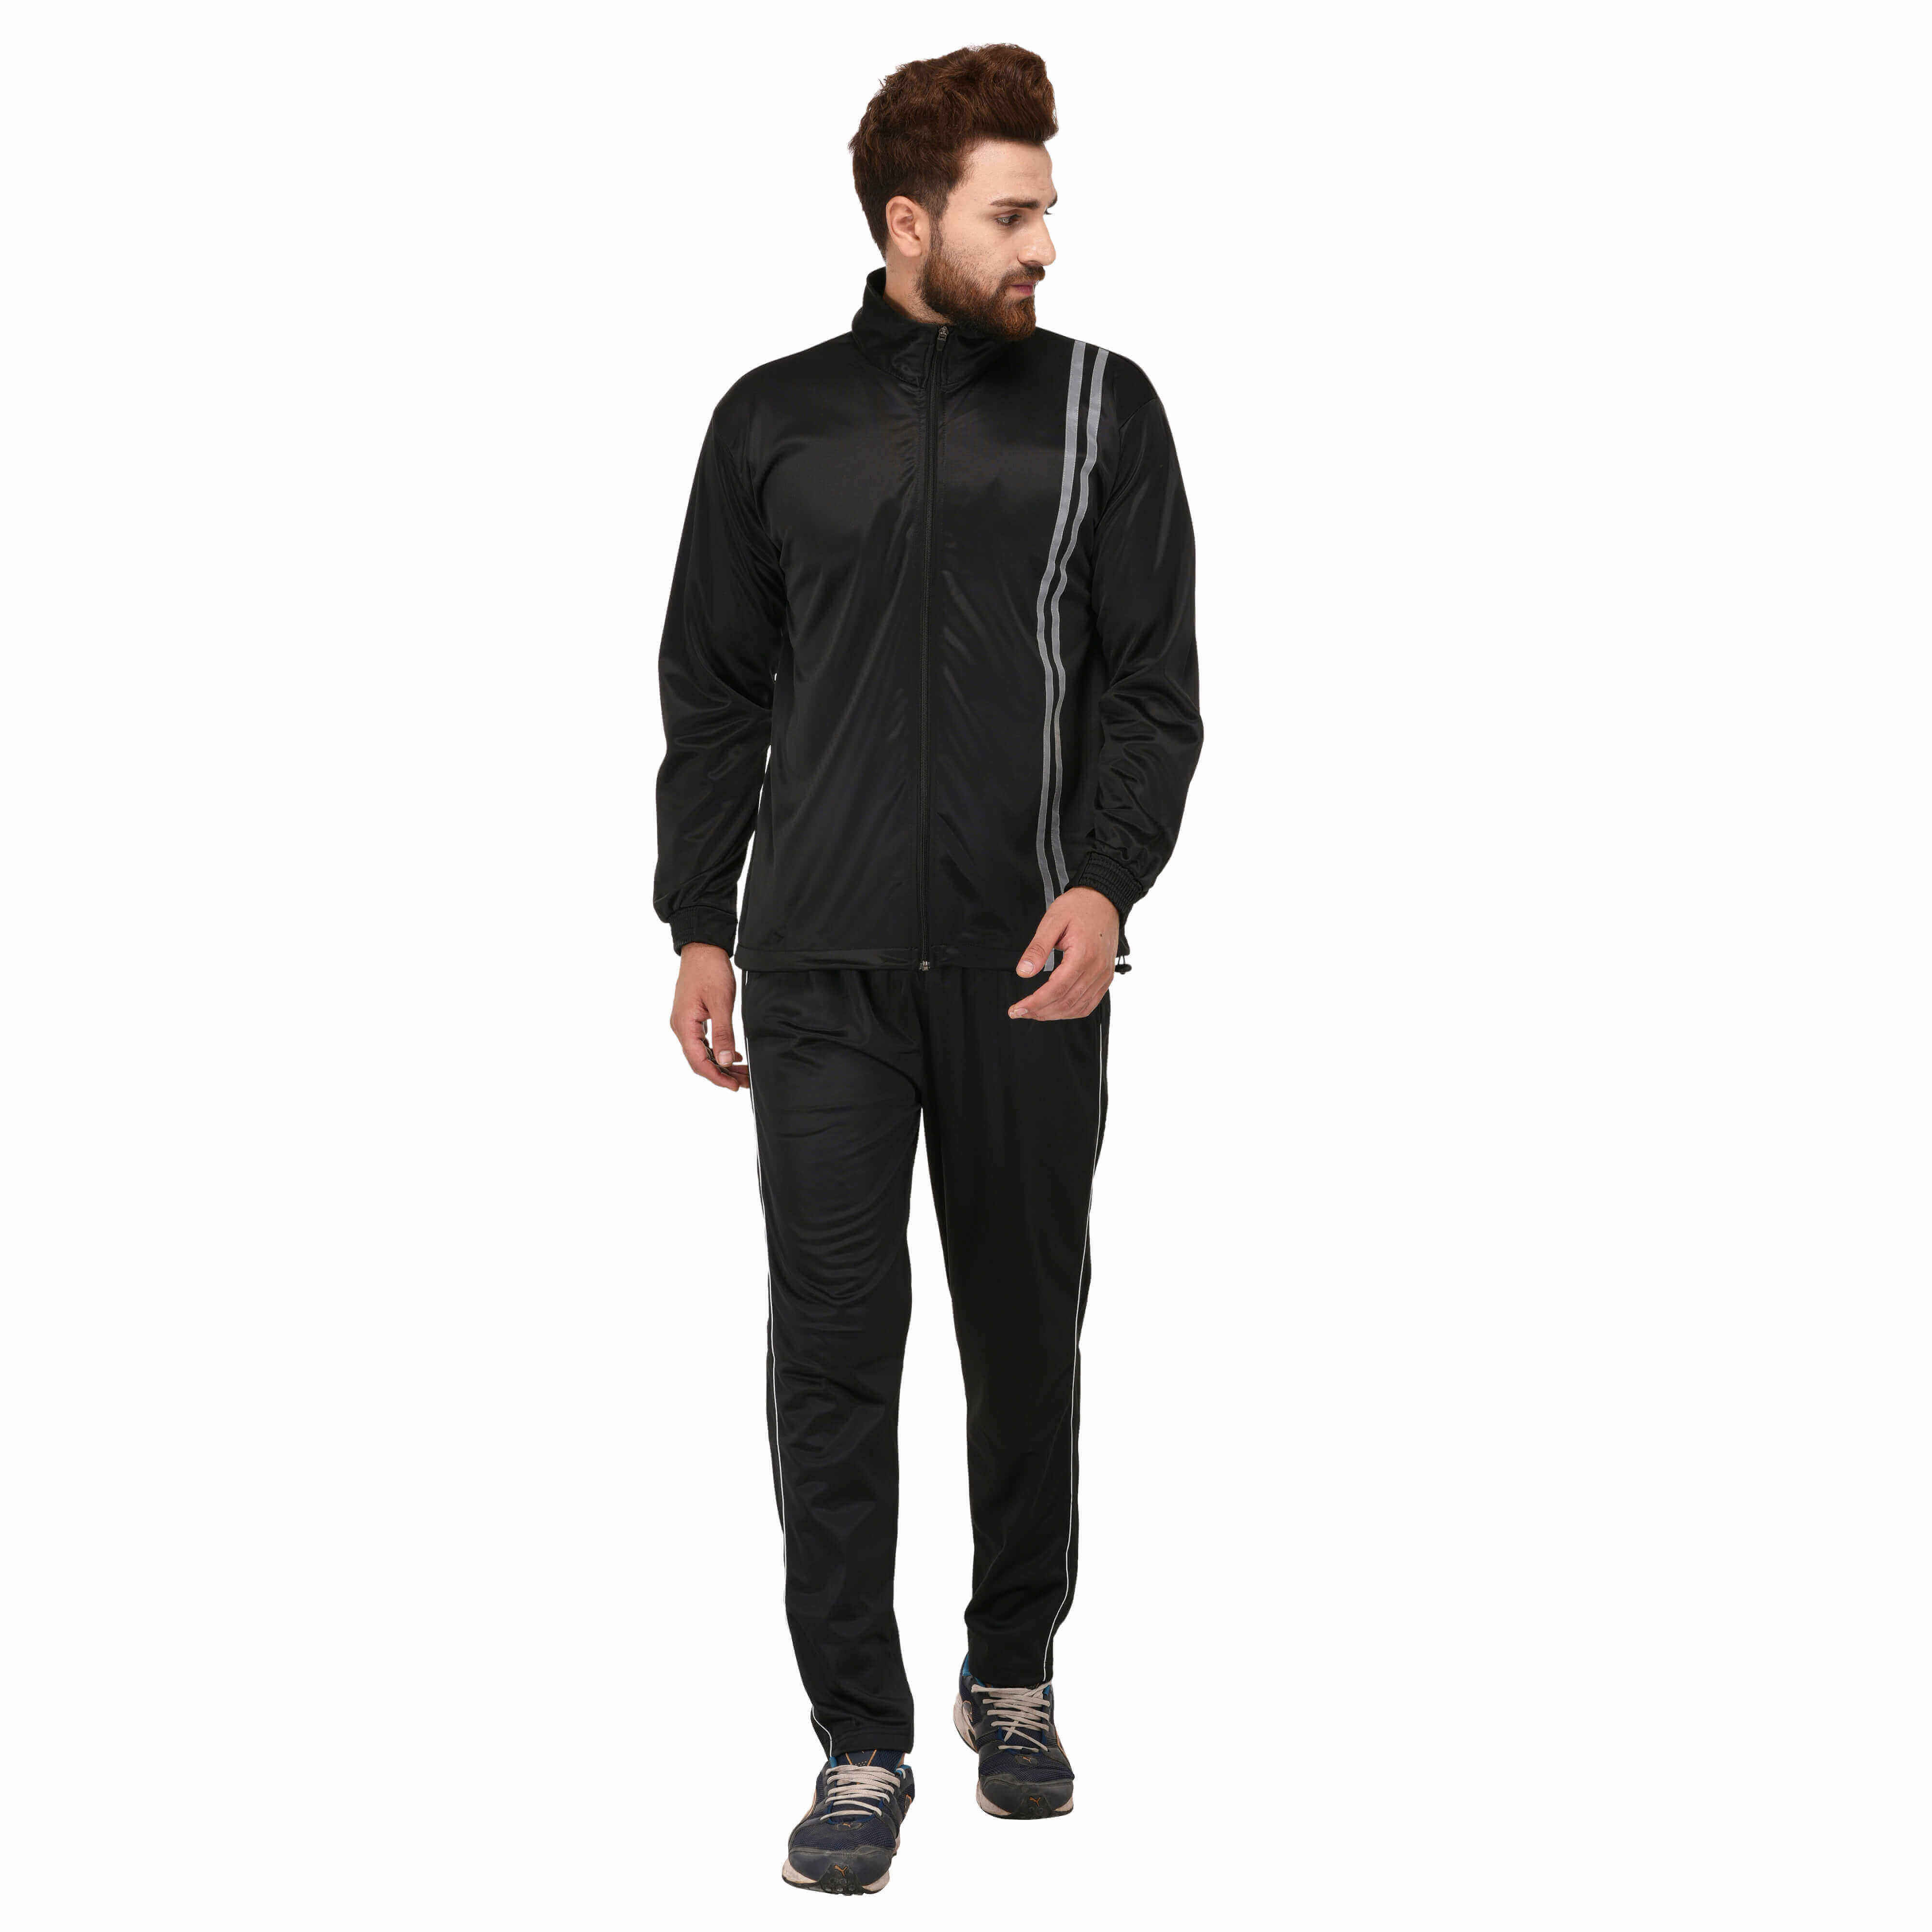 Mens Tracksuit Set Manufacturers in Peru